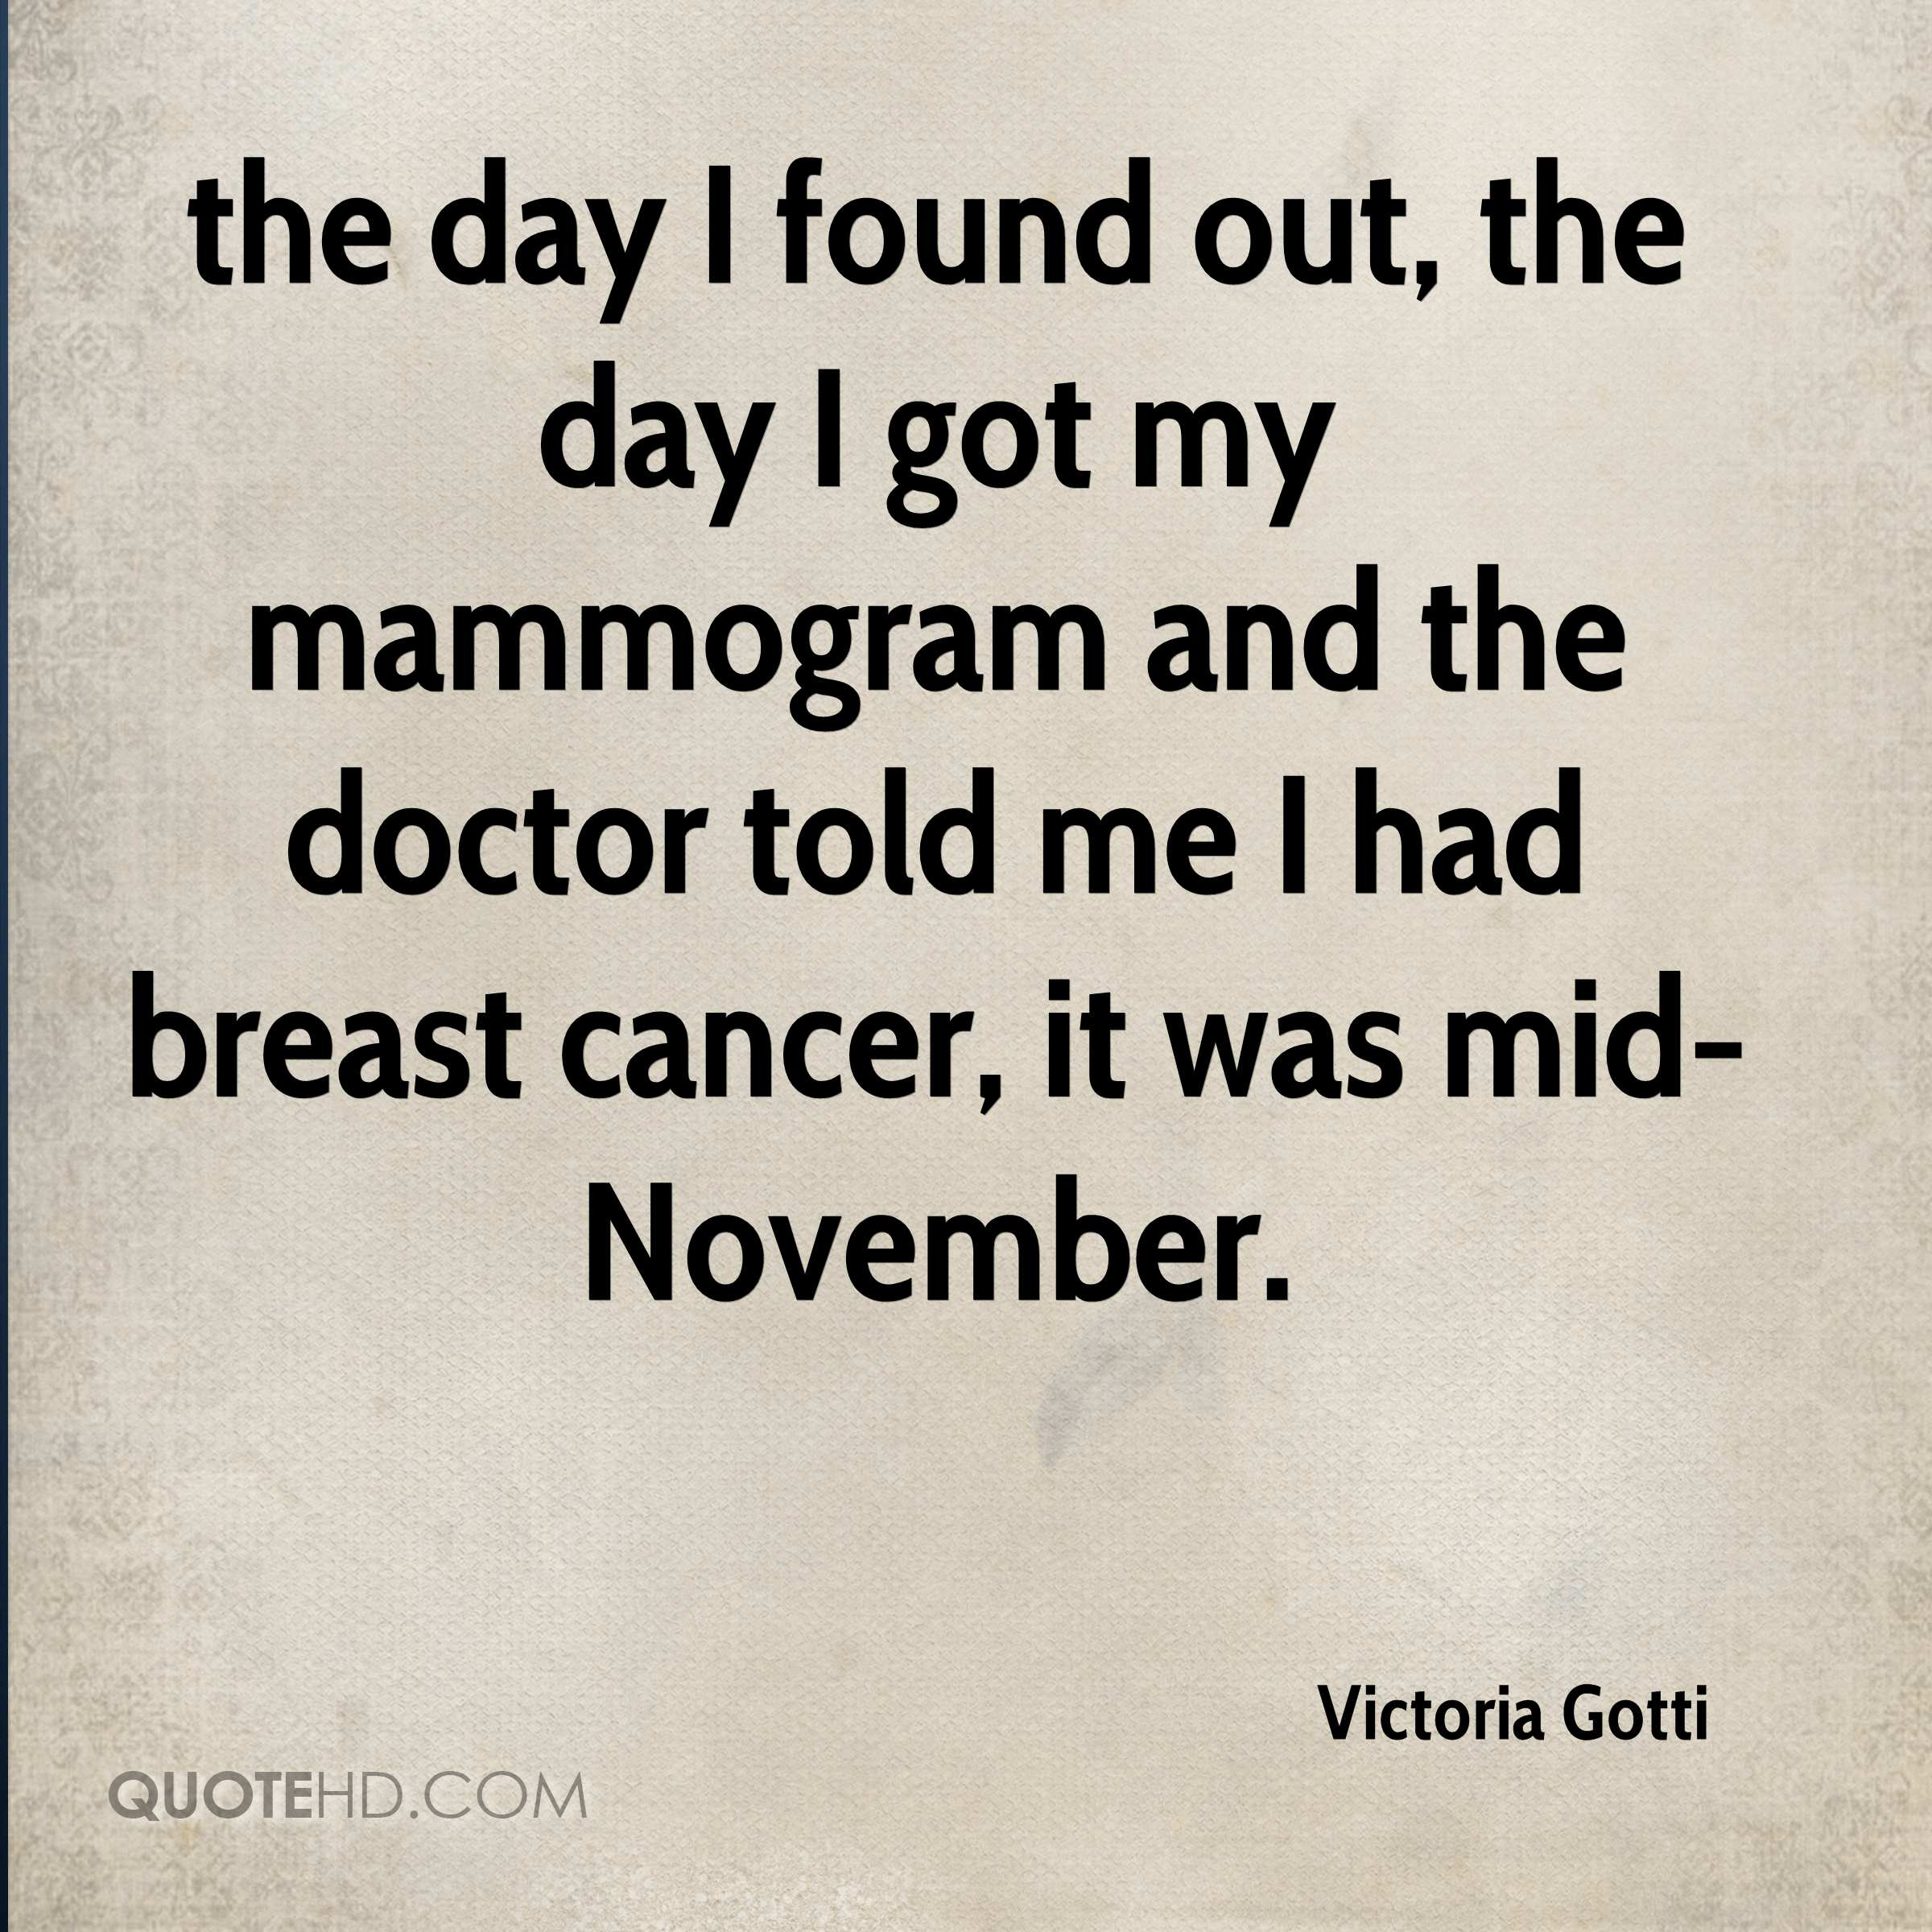 the day I found out, the day I got my mammogram and the doctor told me I had breast cancer, it was mid-November.